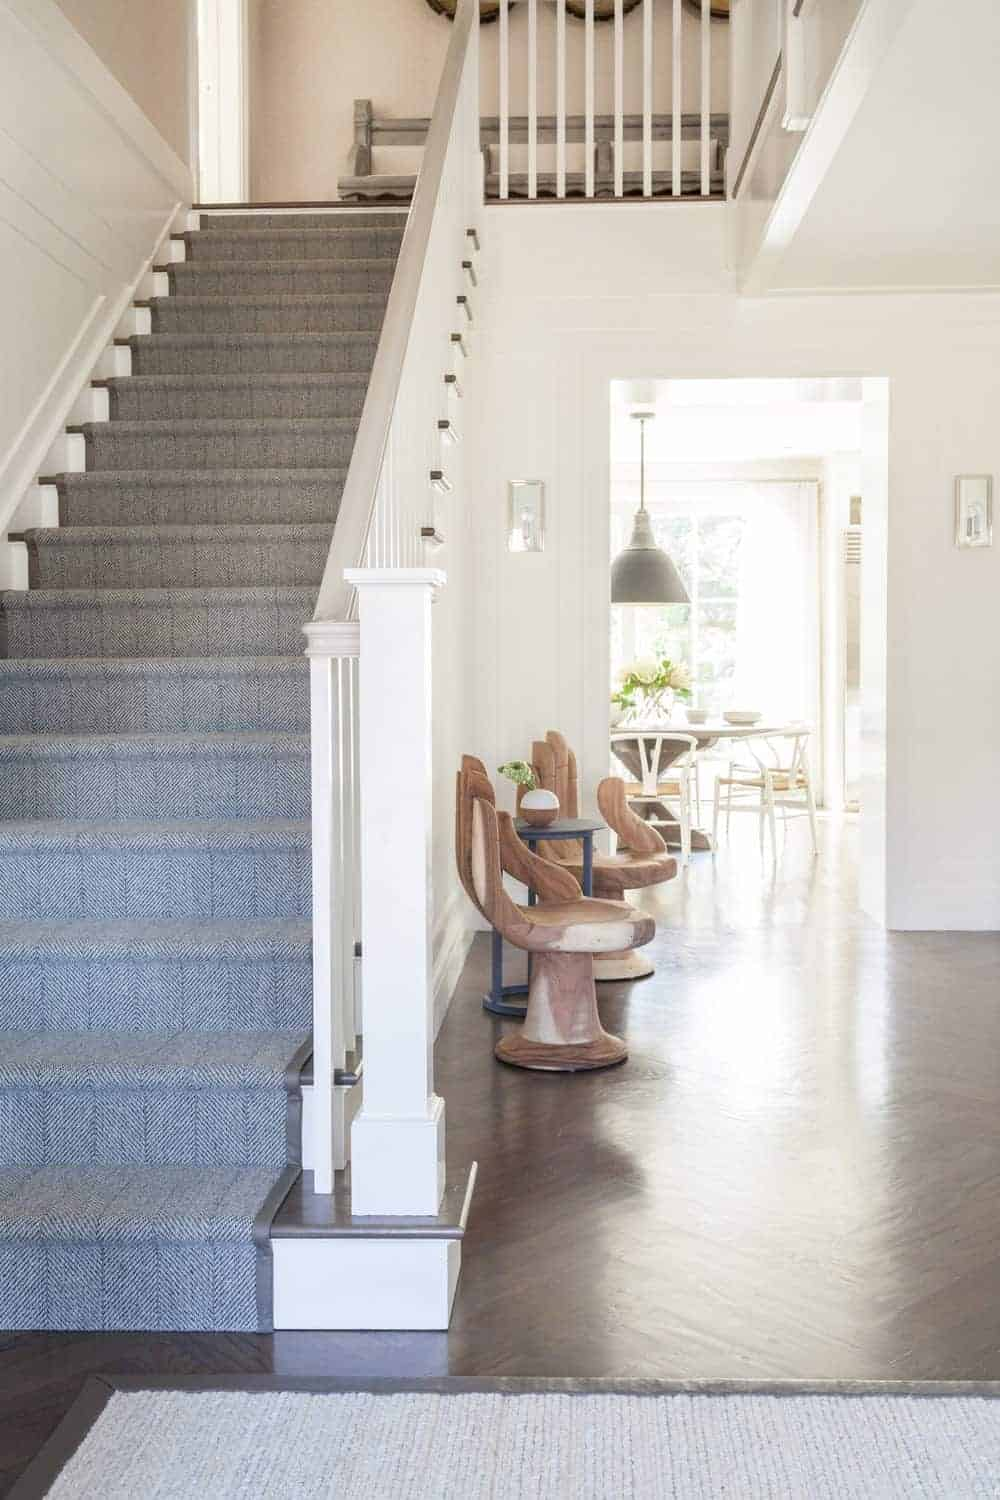 This elegant foyer is adorned with a couple of peculiar wooden chairs in the shape of hands. This gives an interesting welcome for the guests of this home that has a dark flooring contrasted by the white walls of the staircase.